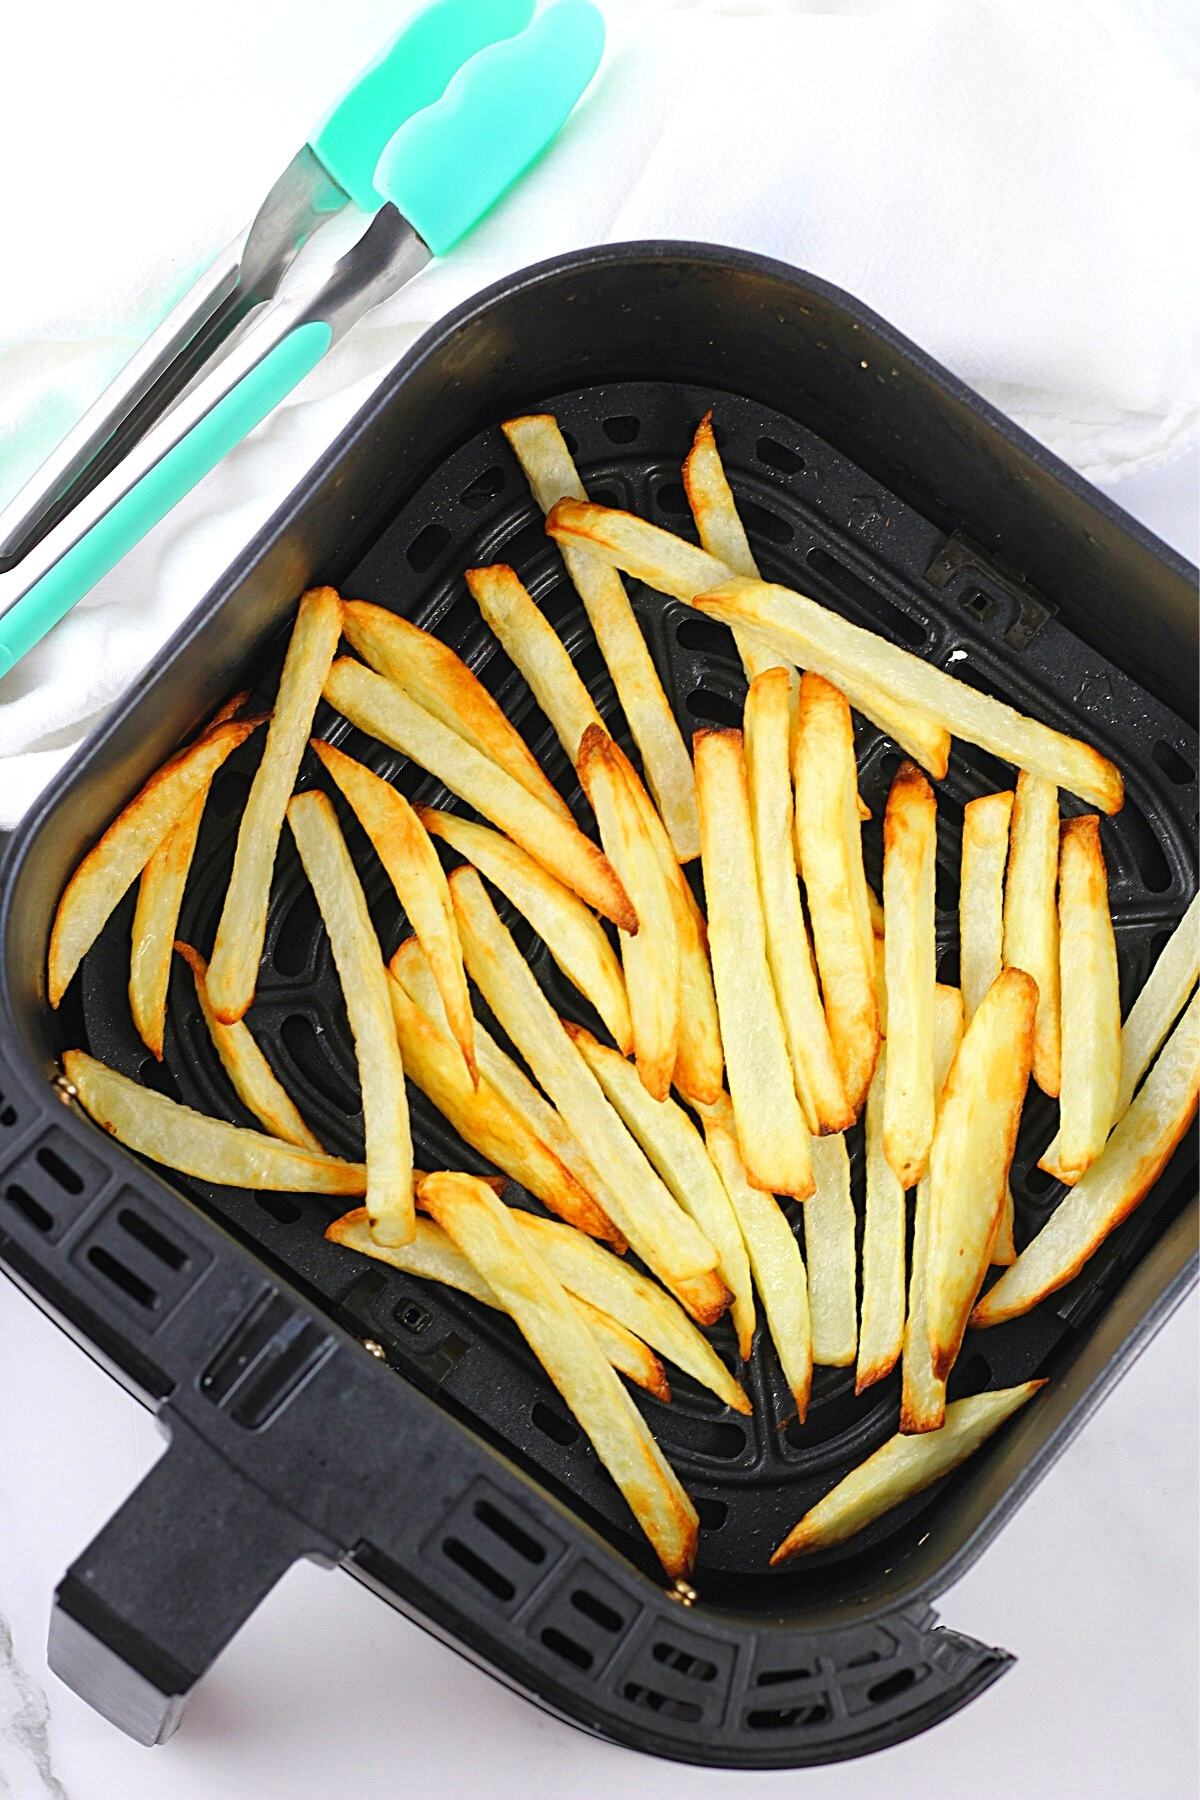 homemade French fries in an air fryer basket with a napkin and tongs on the side